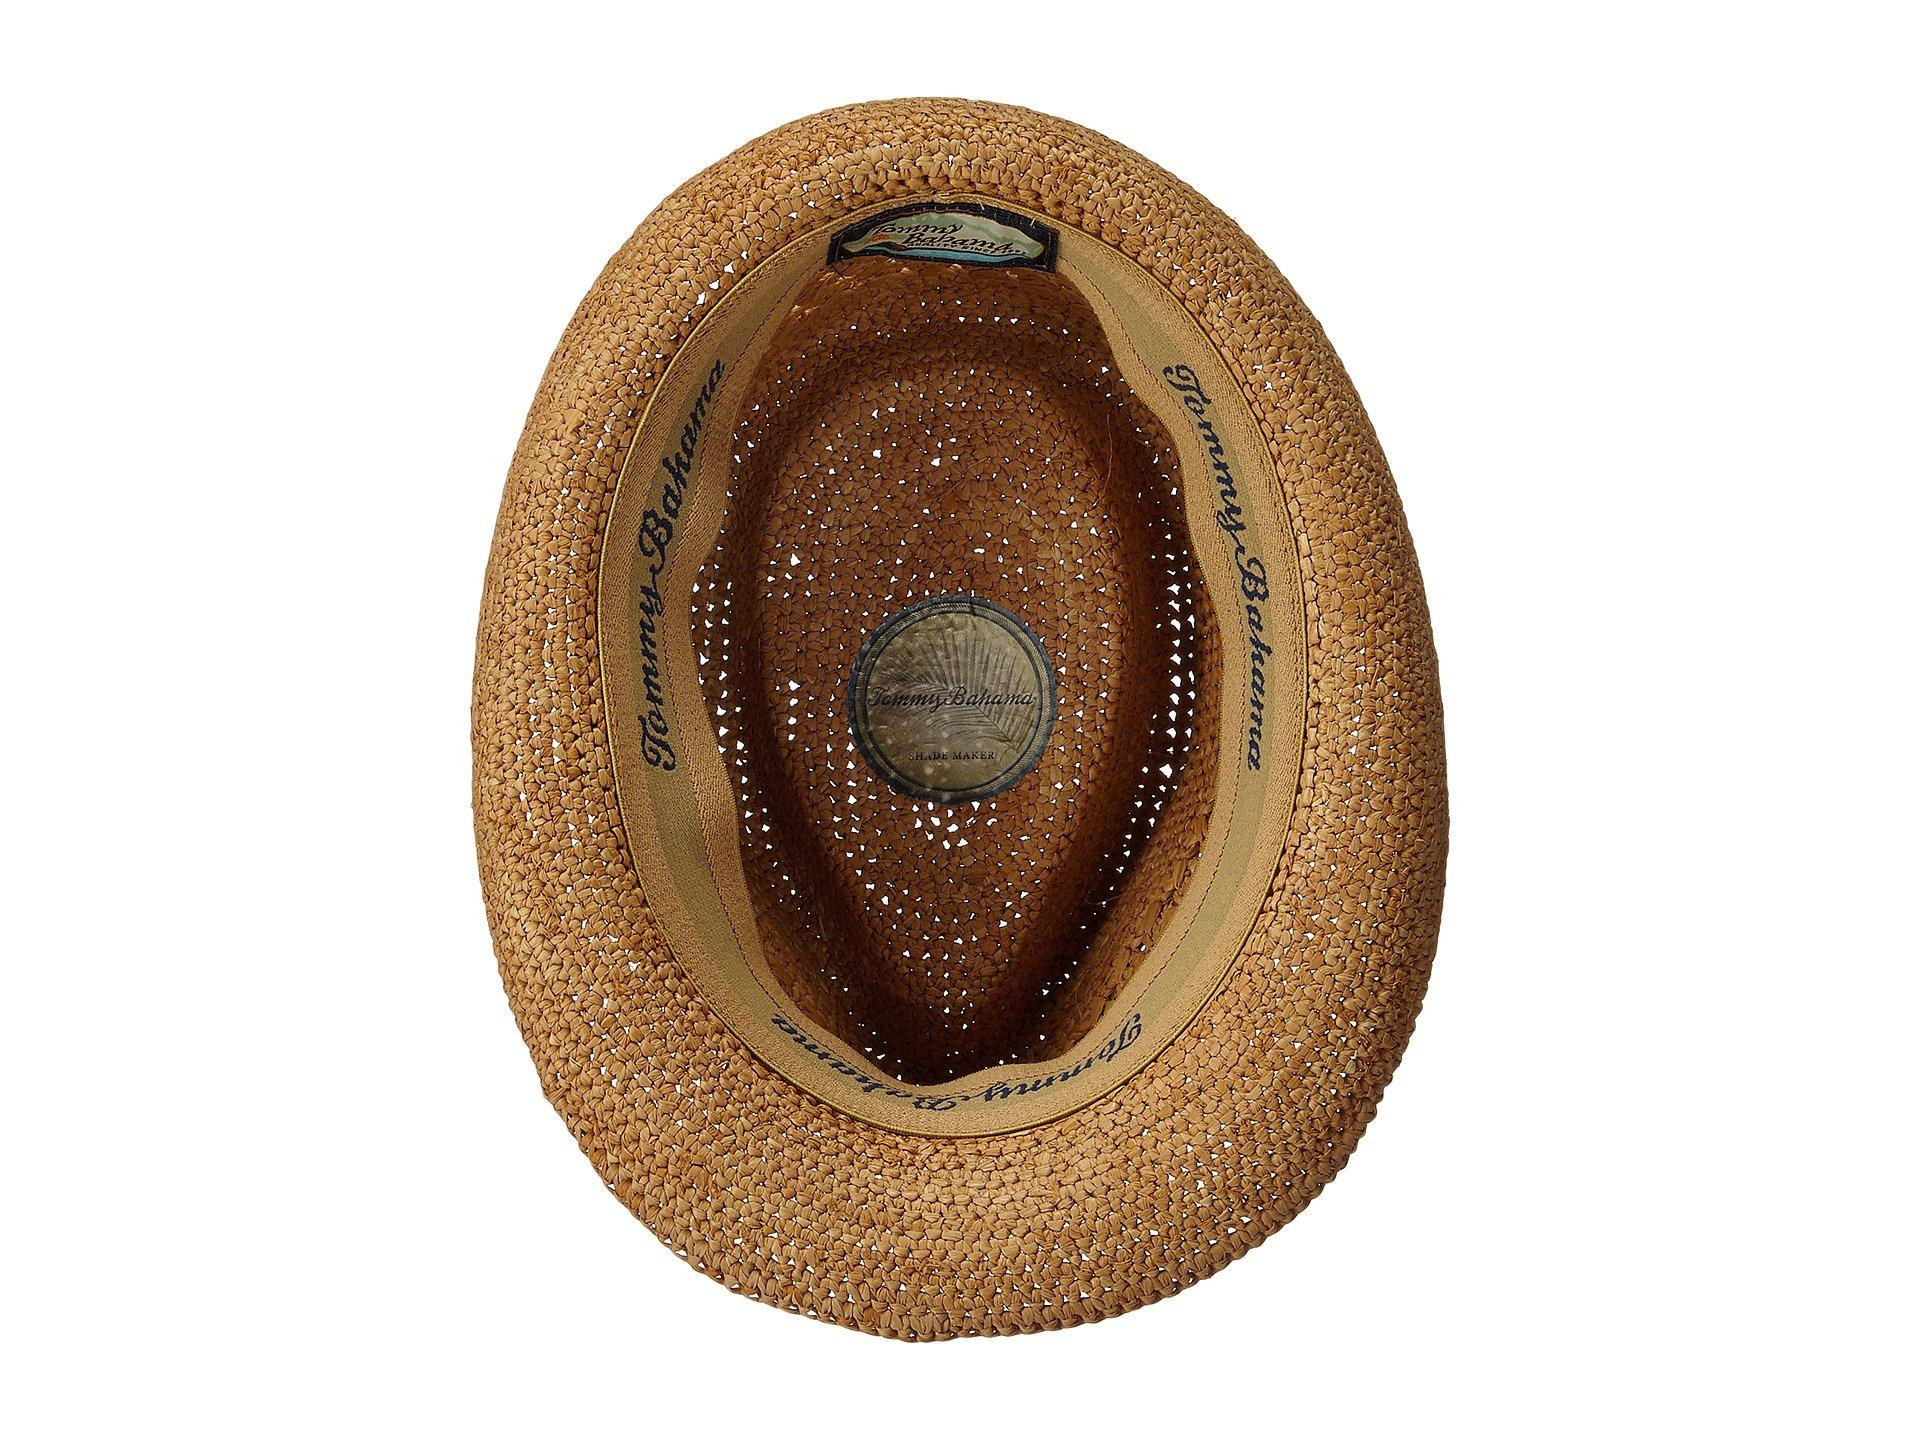 Tommy Bahama - Brown Vent Crochet Raffia Fedora (tea) Fedora Hats for Men  -. View fullscreen 783a63361af4